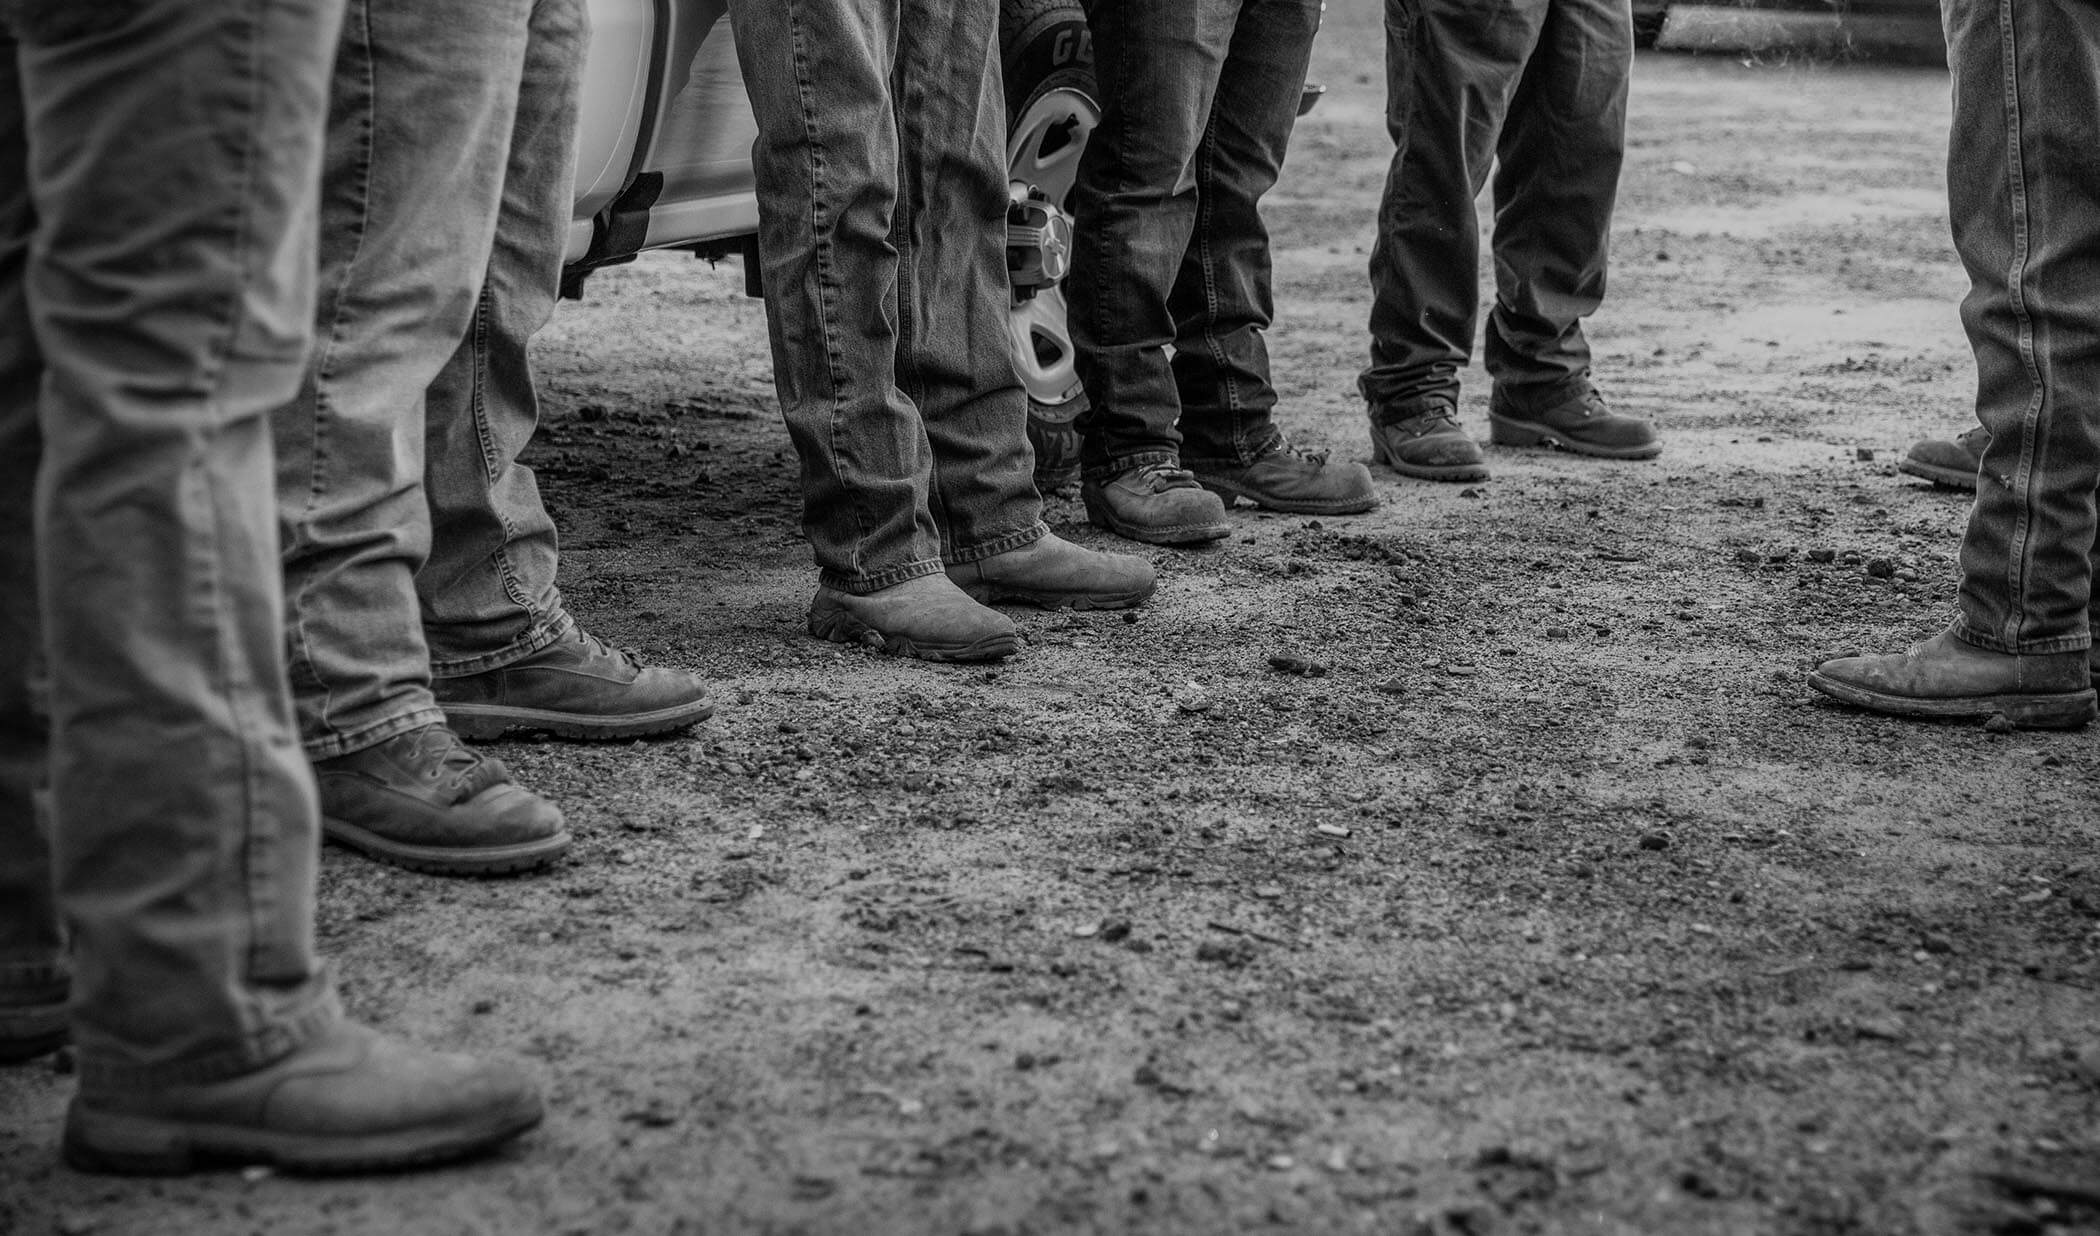 BW image of construction workers legs and boots